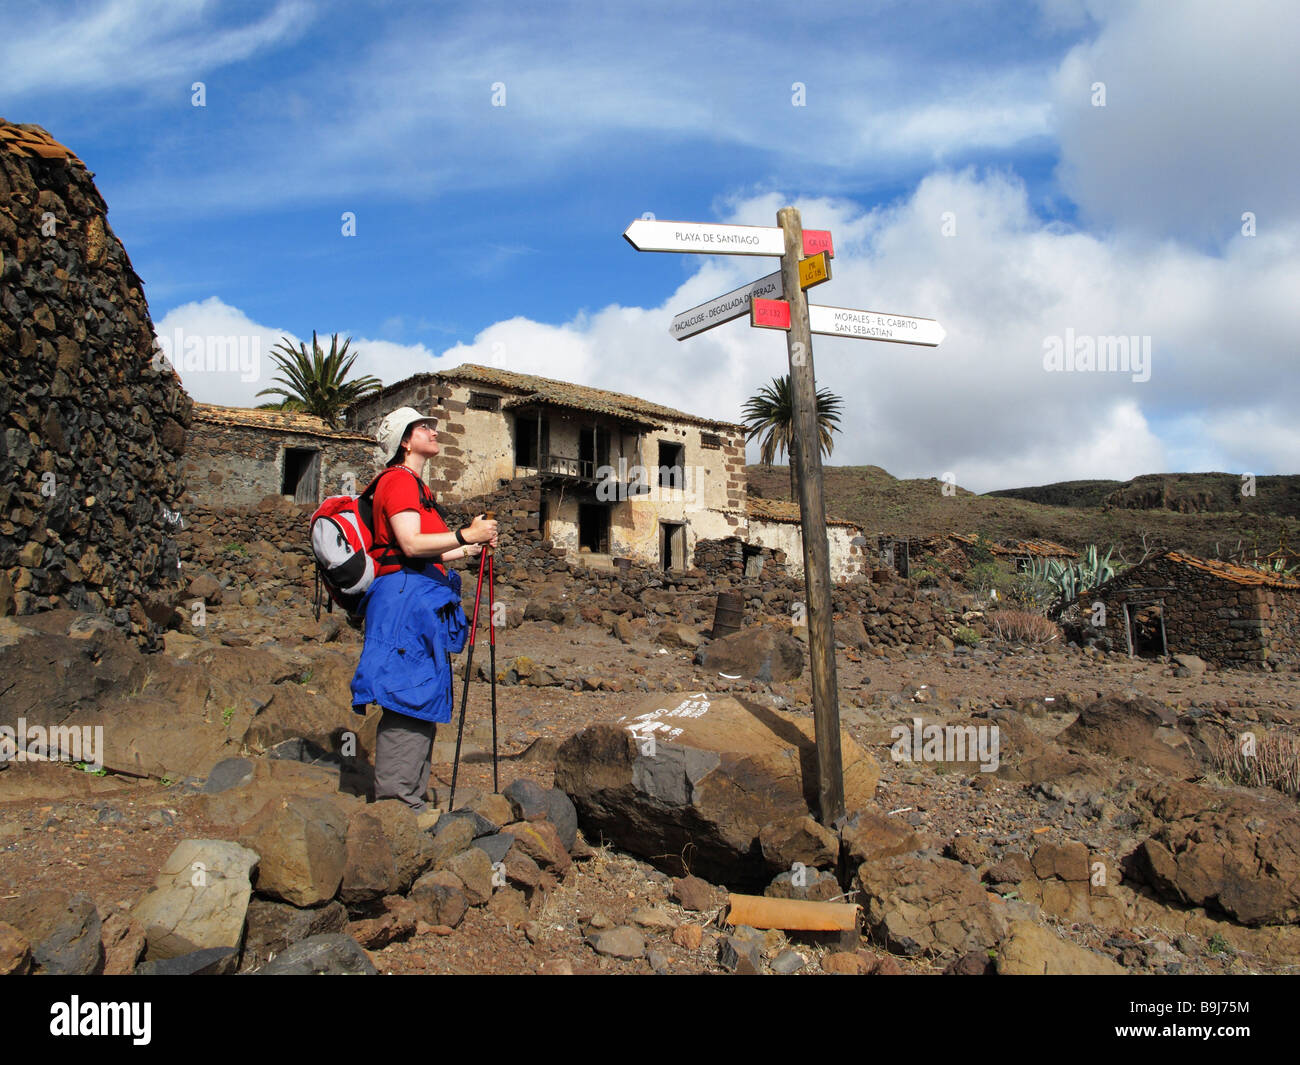 Hiker, signpost and deserted houses in Contreras near Playa Santiago, La Gomera, Canary Islands, Spain, Europe - Stock Image